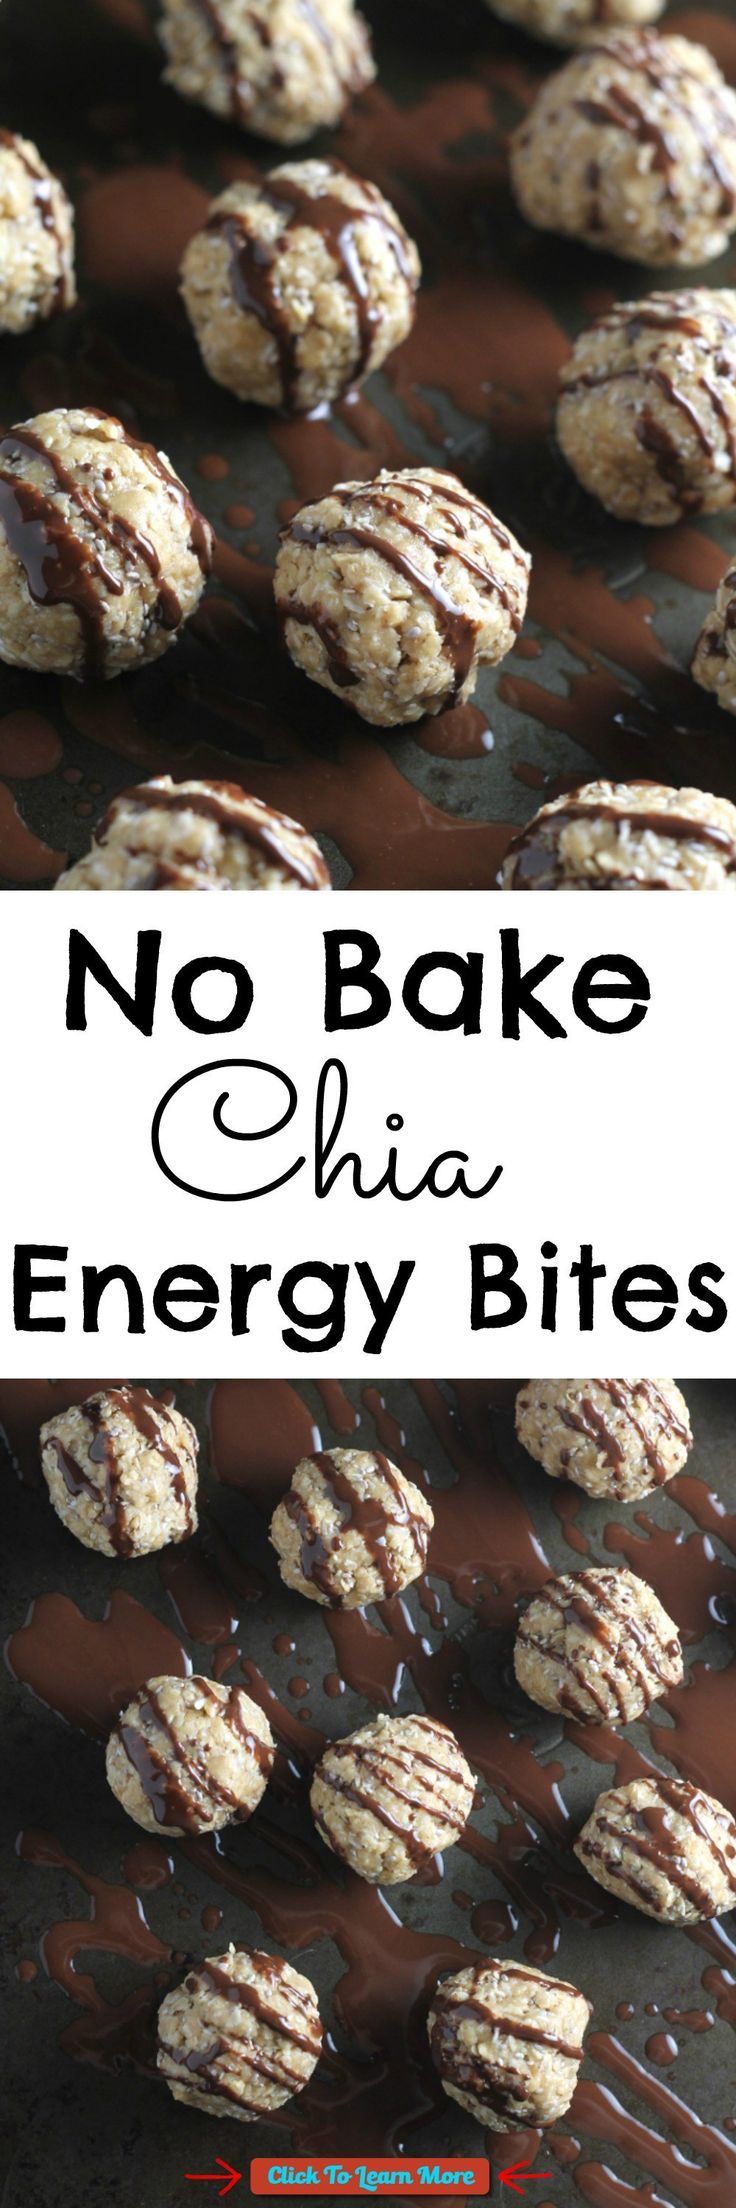 #FastestWayToLoseWeight by EATING, Click to learn more, An easy no bake recipe for gluten free Energy Bites made with oats, nut butter and chia seeds , #HealthyRecipes, #FitnessRecipes, #BurnFatRecipes, #WeightLossRecipes, #WeightLossDiets